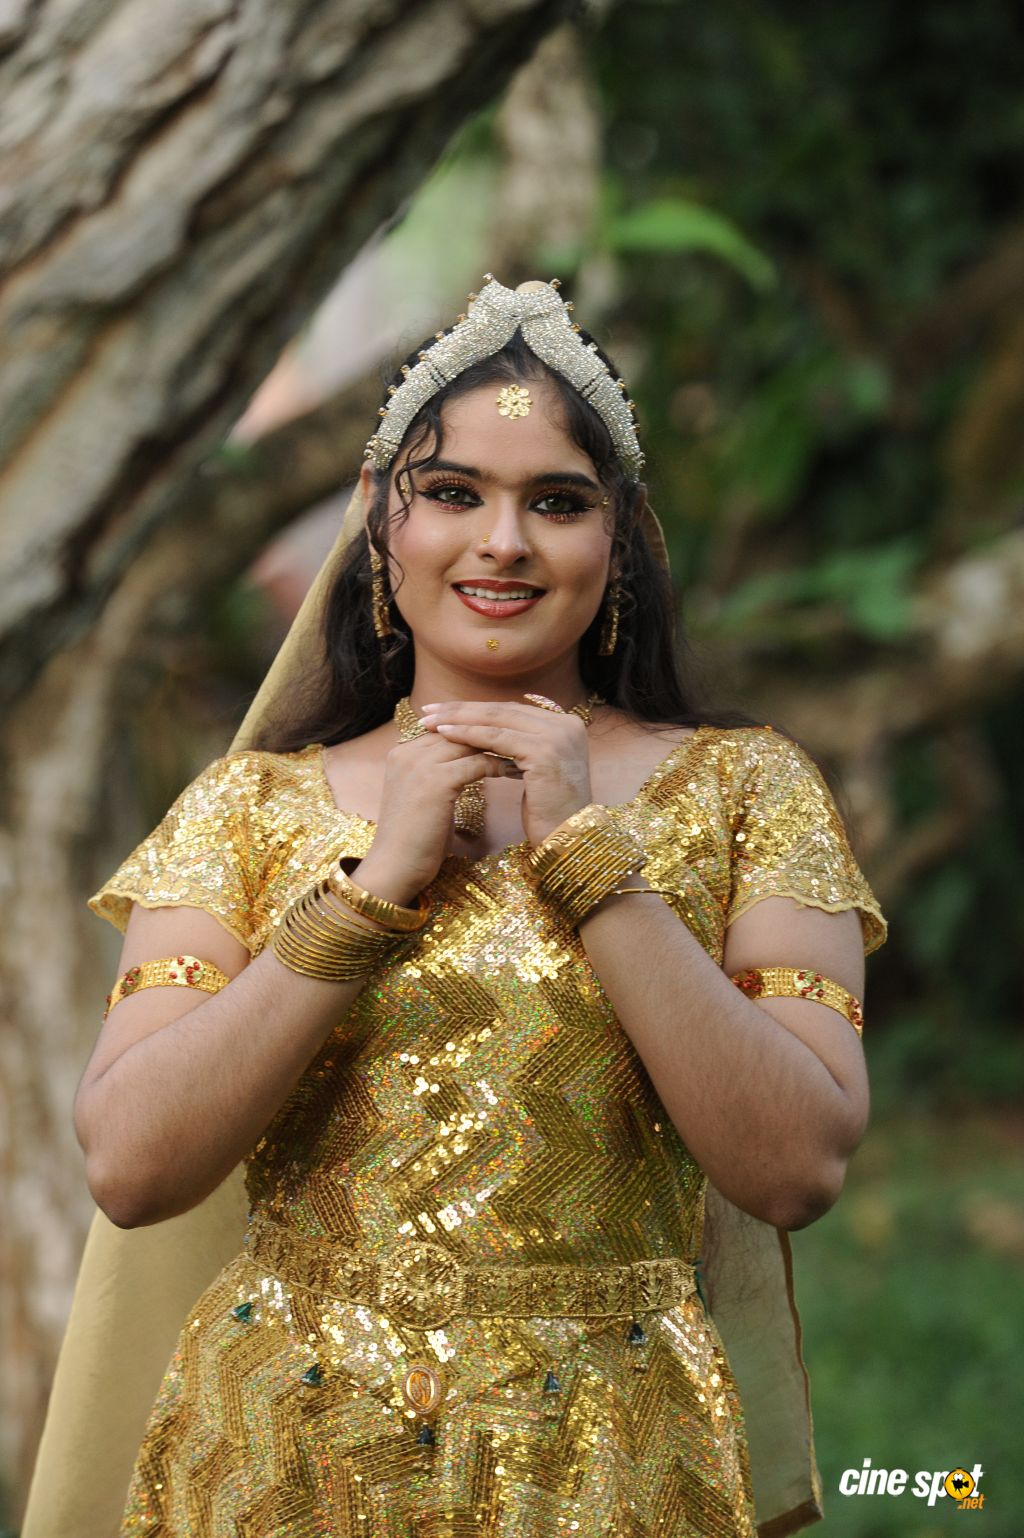 Sajitha betti Malayalam actress photos (6)